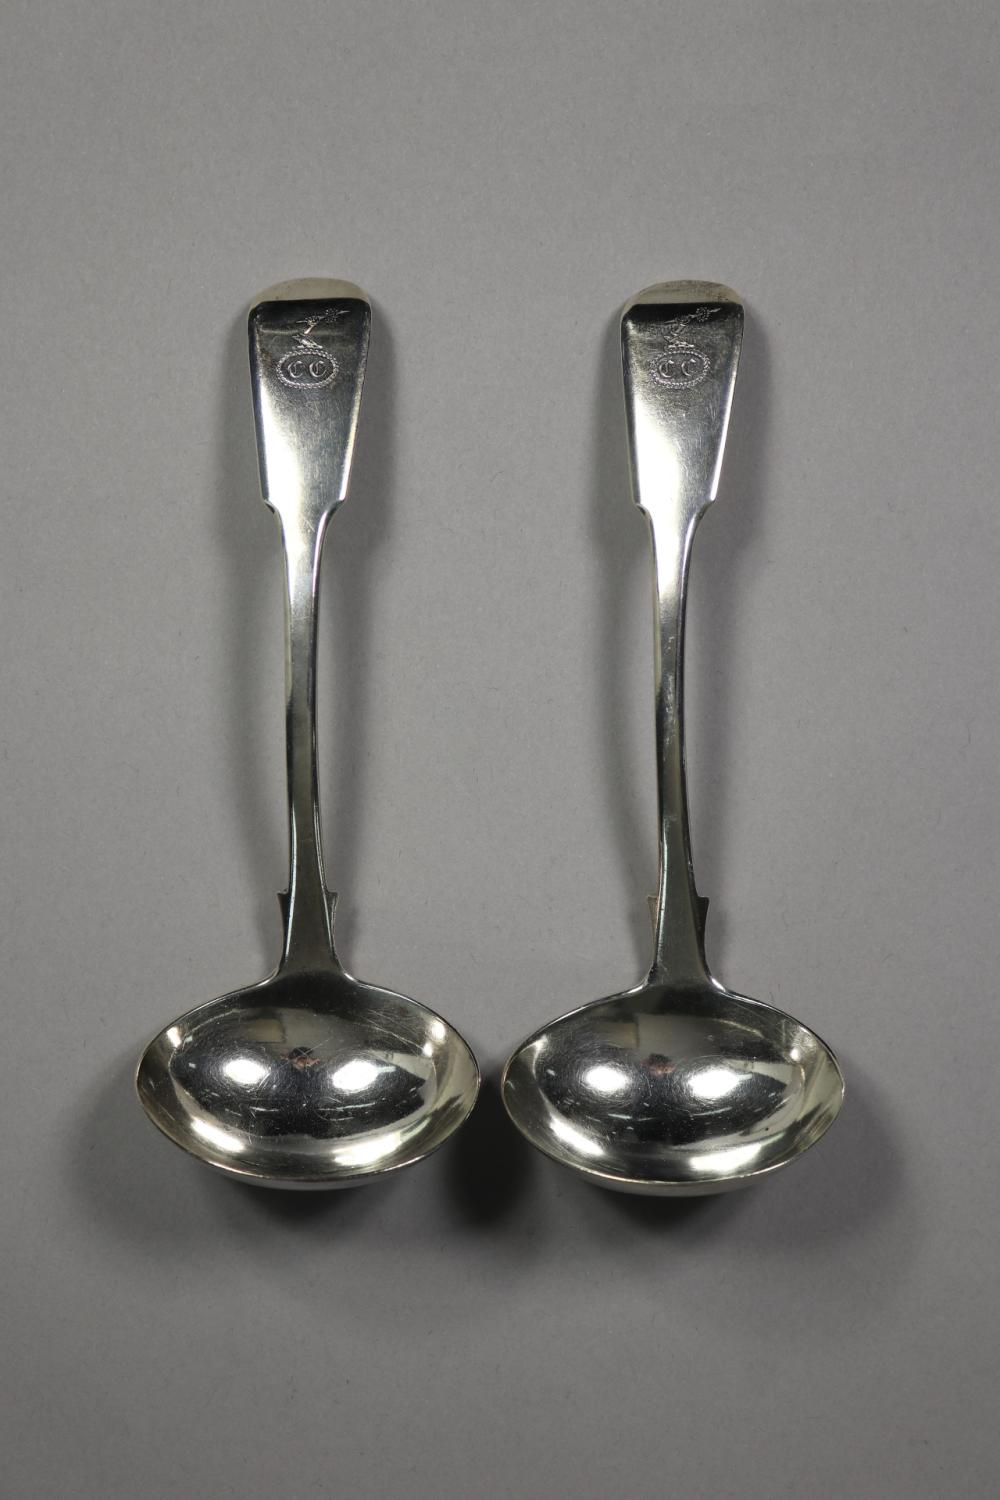 Pair of antique George III hallmarked sterling silver fiddle pattern sauce ladles, monogrammed, London 1820-21, Thomas and George Hayter, approx 125 grams